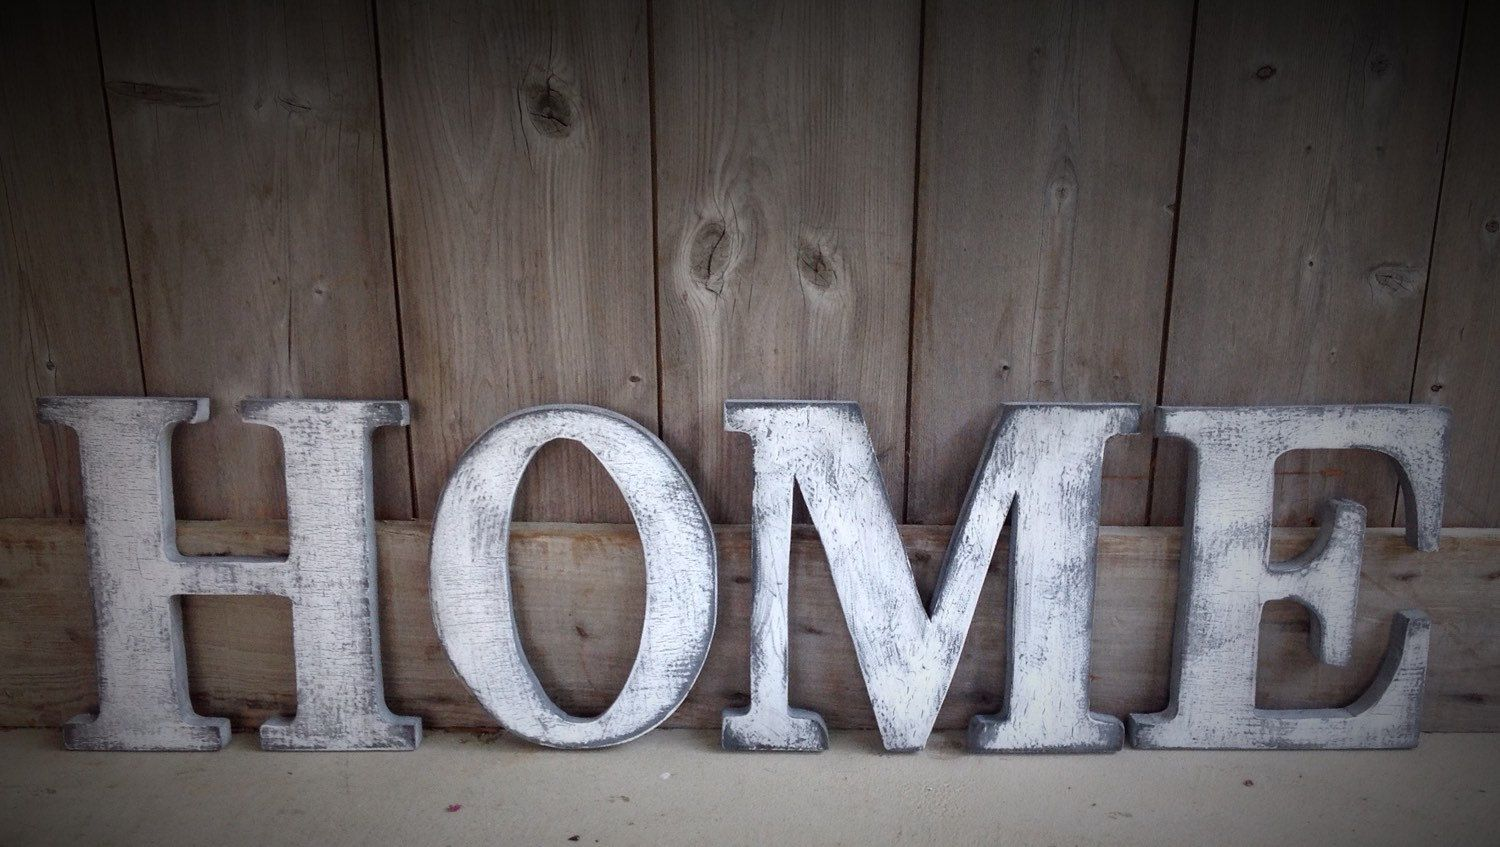 Home Barn Wood Letters Measuring 10 Inches Tall Barn Wood Letters Rustic Letters Rustic Decor Rustic Letter Home Si Wood Letters Rustic Letters Barn Wood